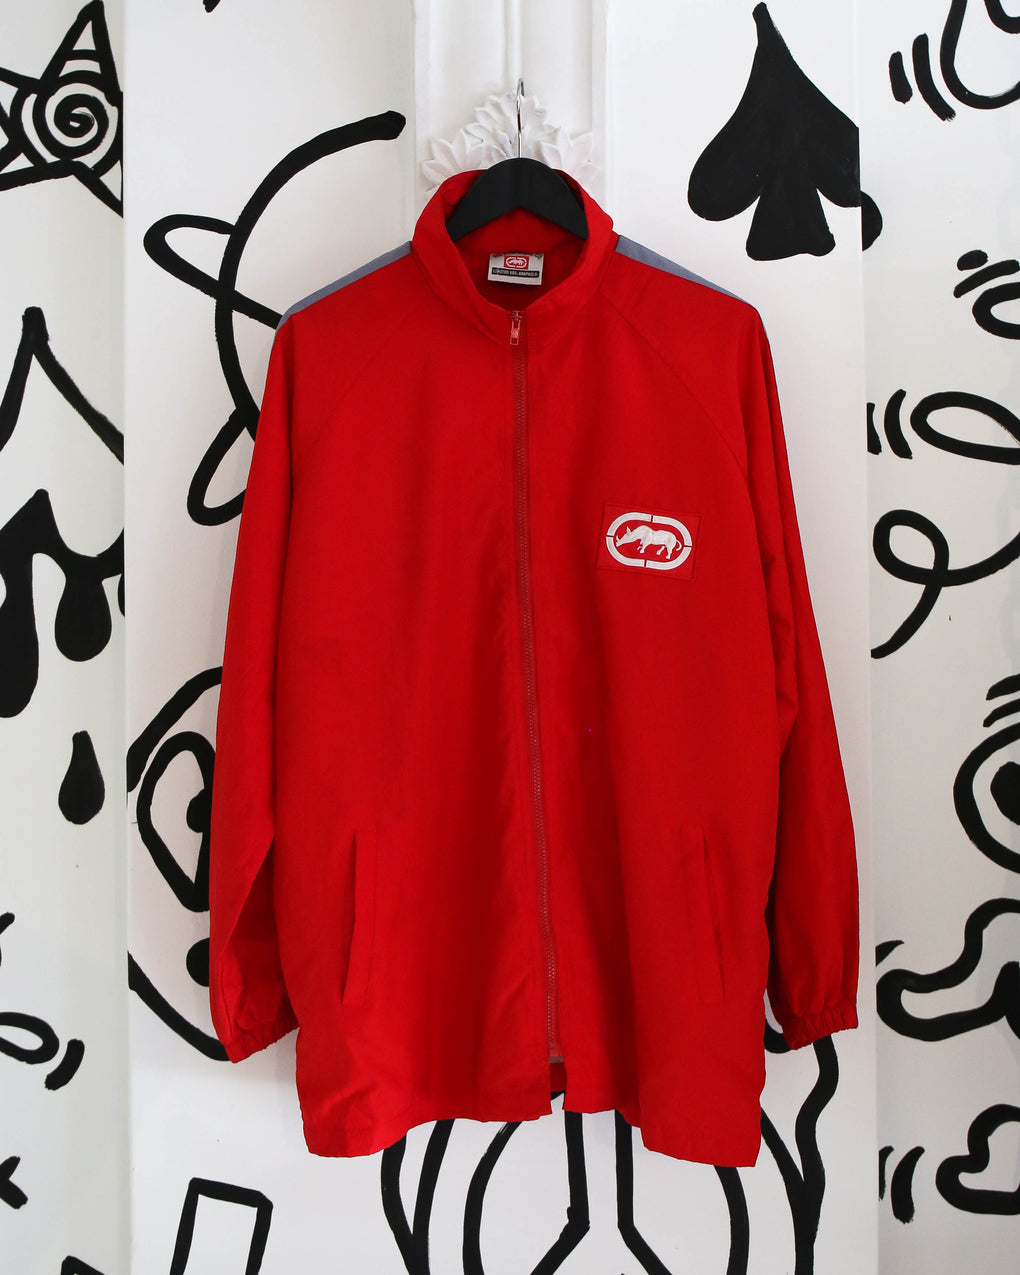 ECKO SPORTS JACKET - FROTHLYF